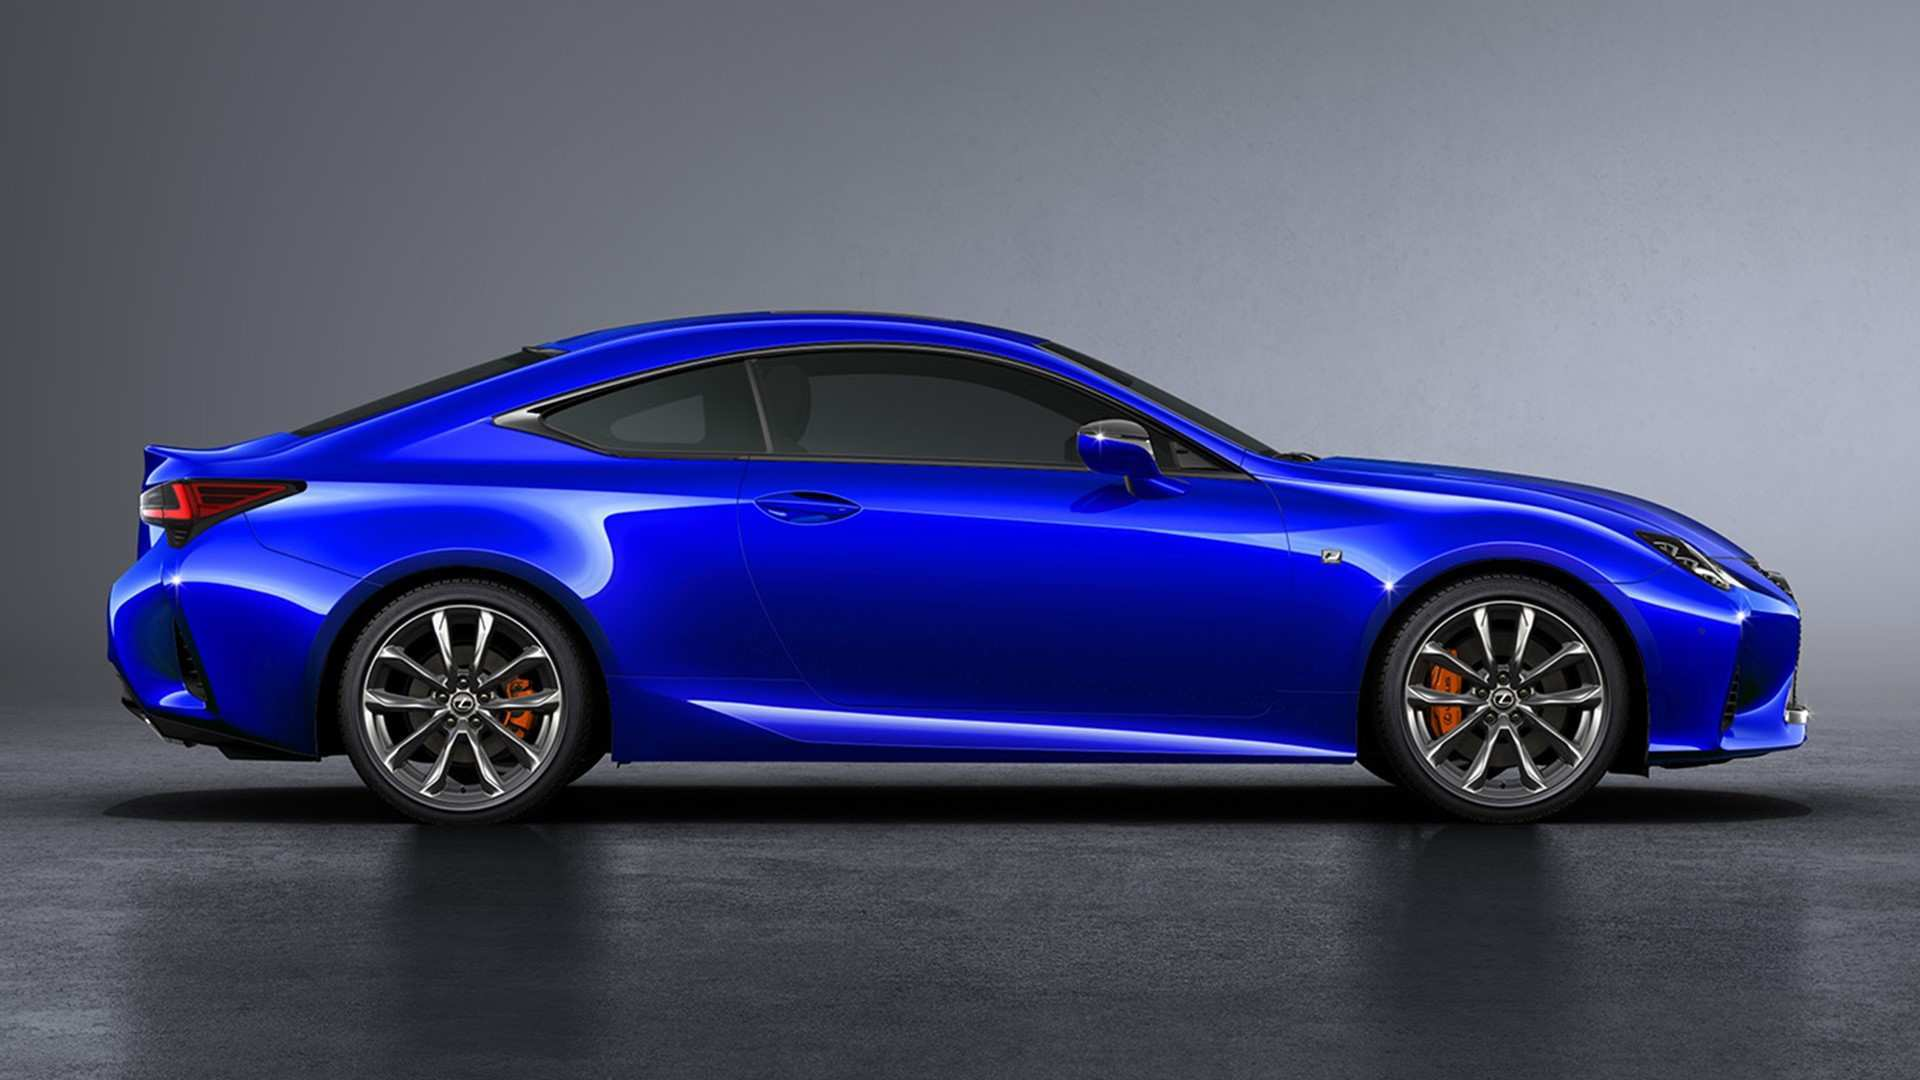 21 Concept of Price Of 2019 Lexus Review by Price Of 2019 Lexus